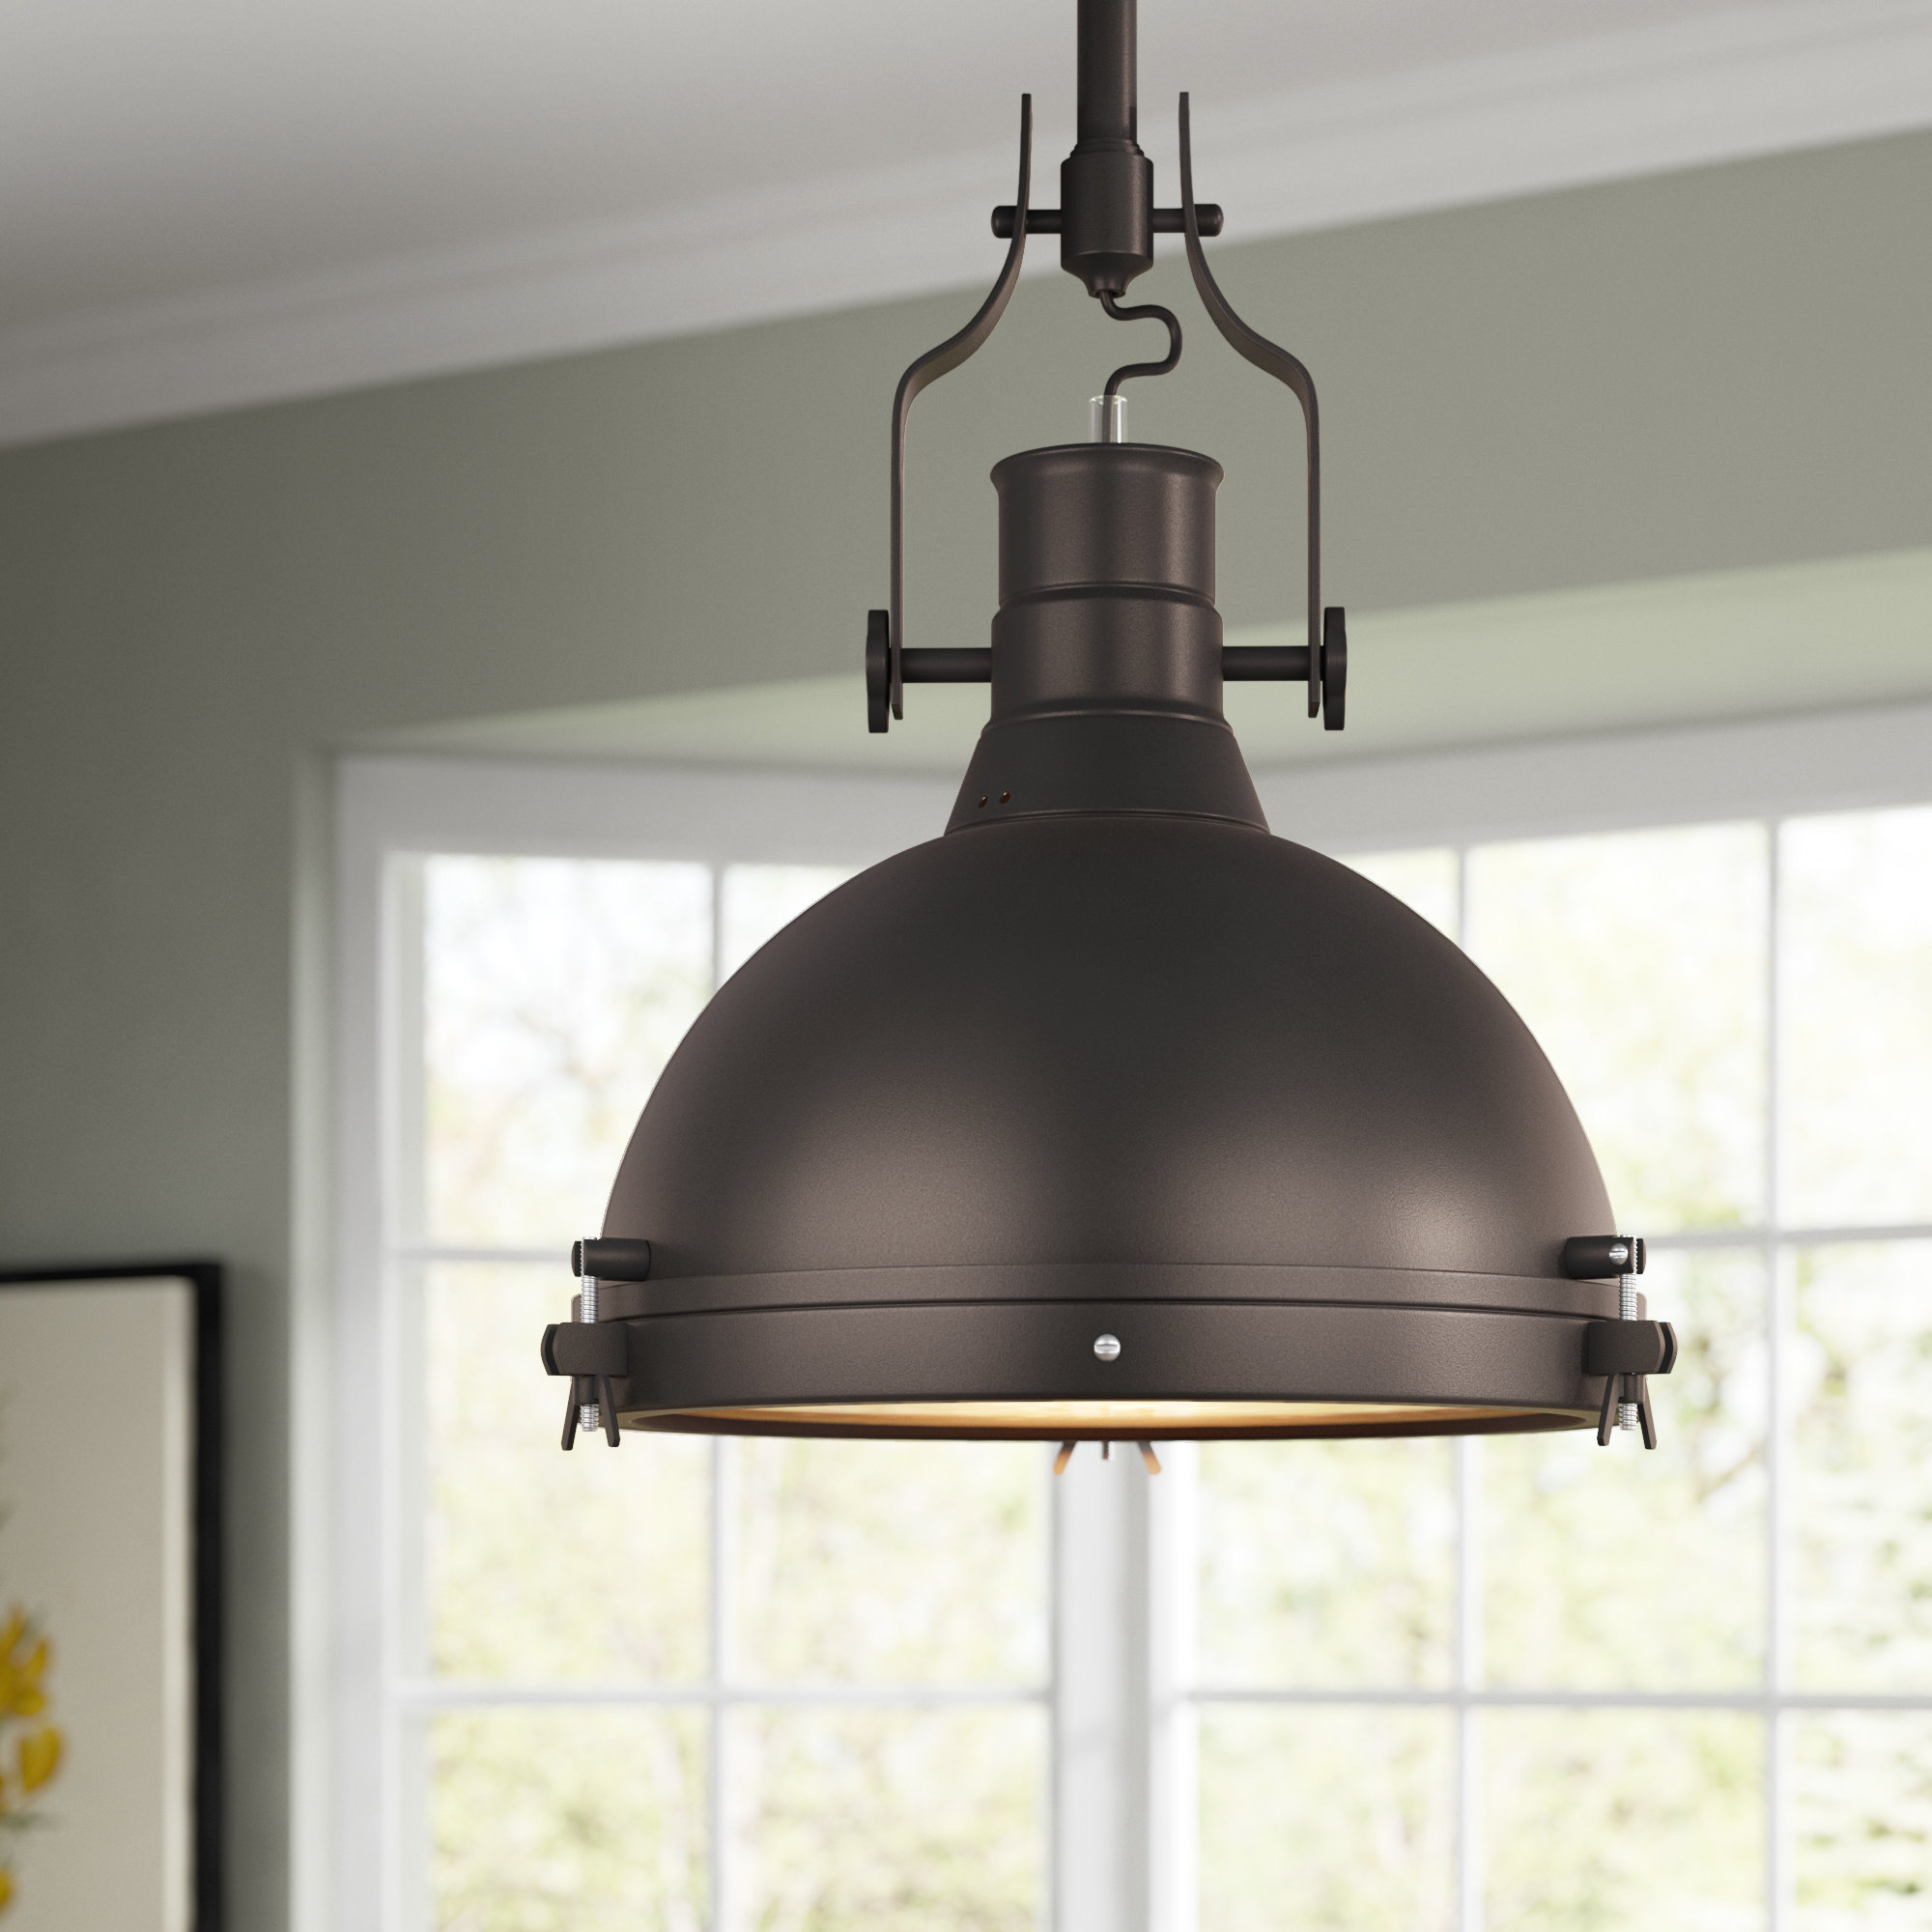 Wamblee 1 Light Single Dome Pendant For Priston 1 Light Single Dome Pendants (View 28 of 30)